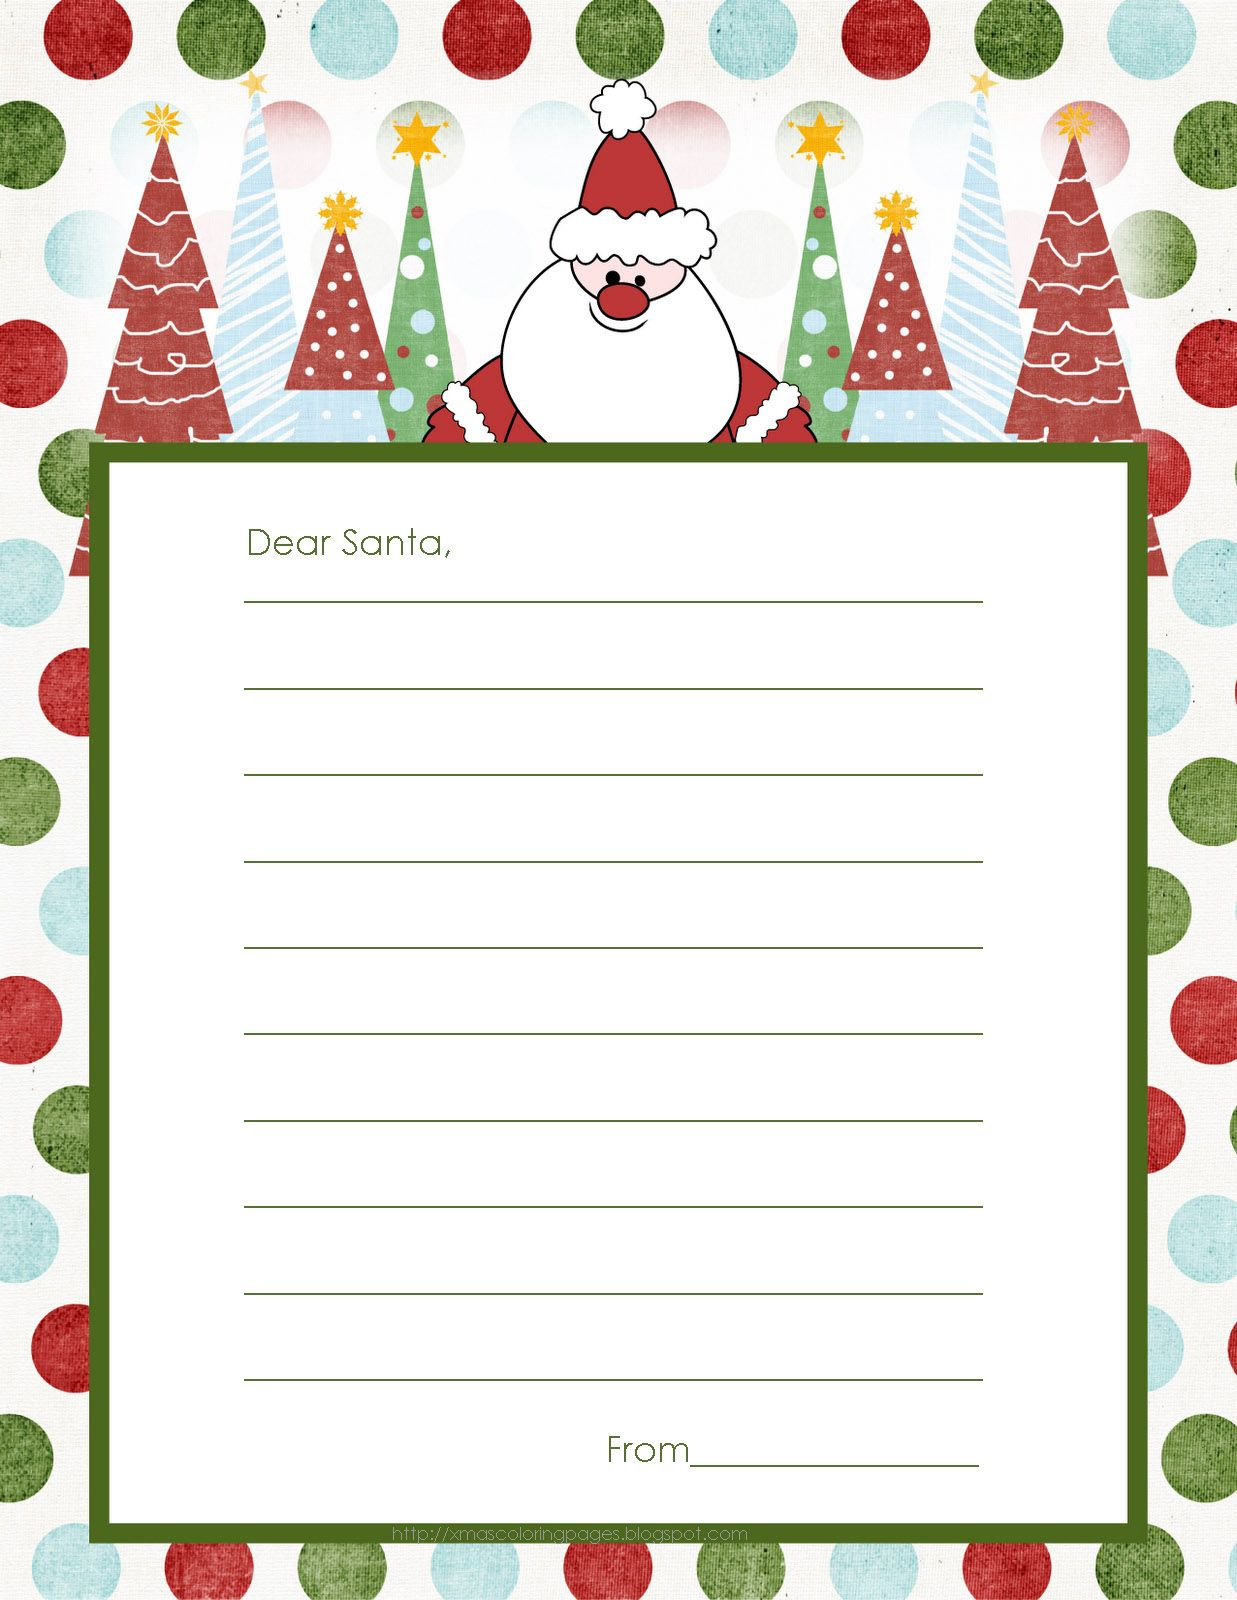 Letter To Santa Template Free |  To Send A Letter To Santa Now - North Pole Stationary Printable Free